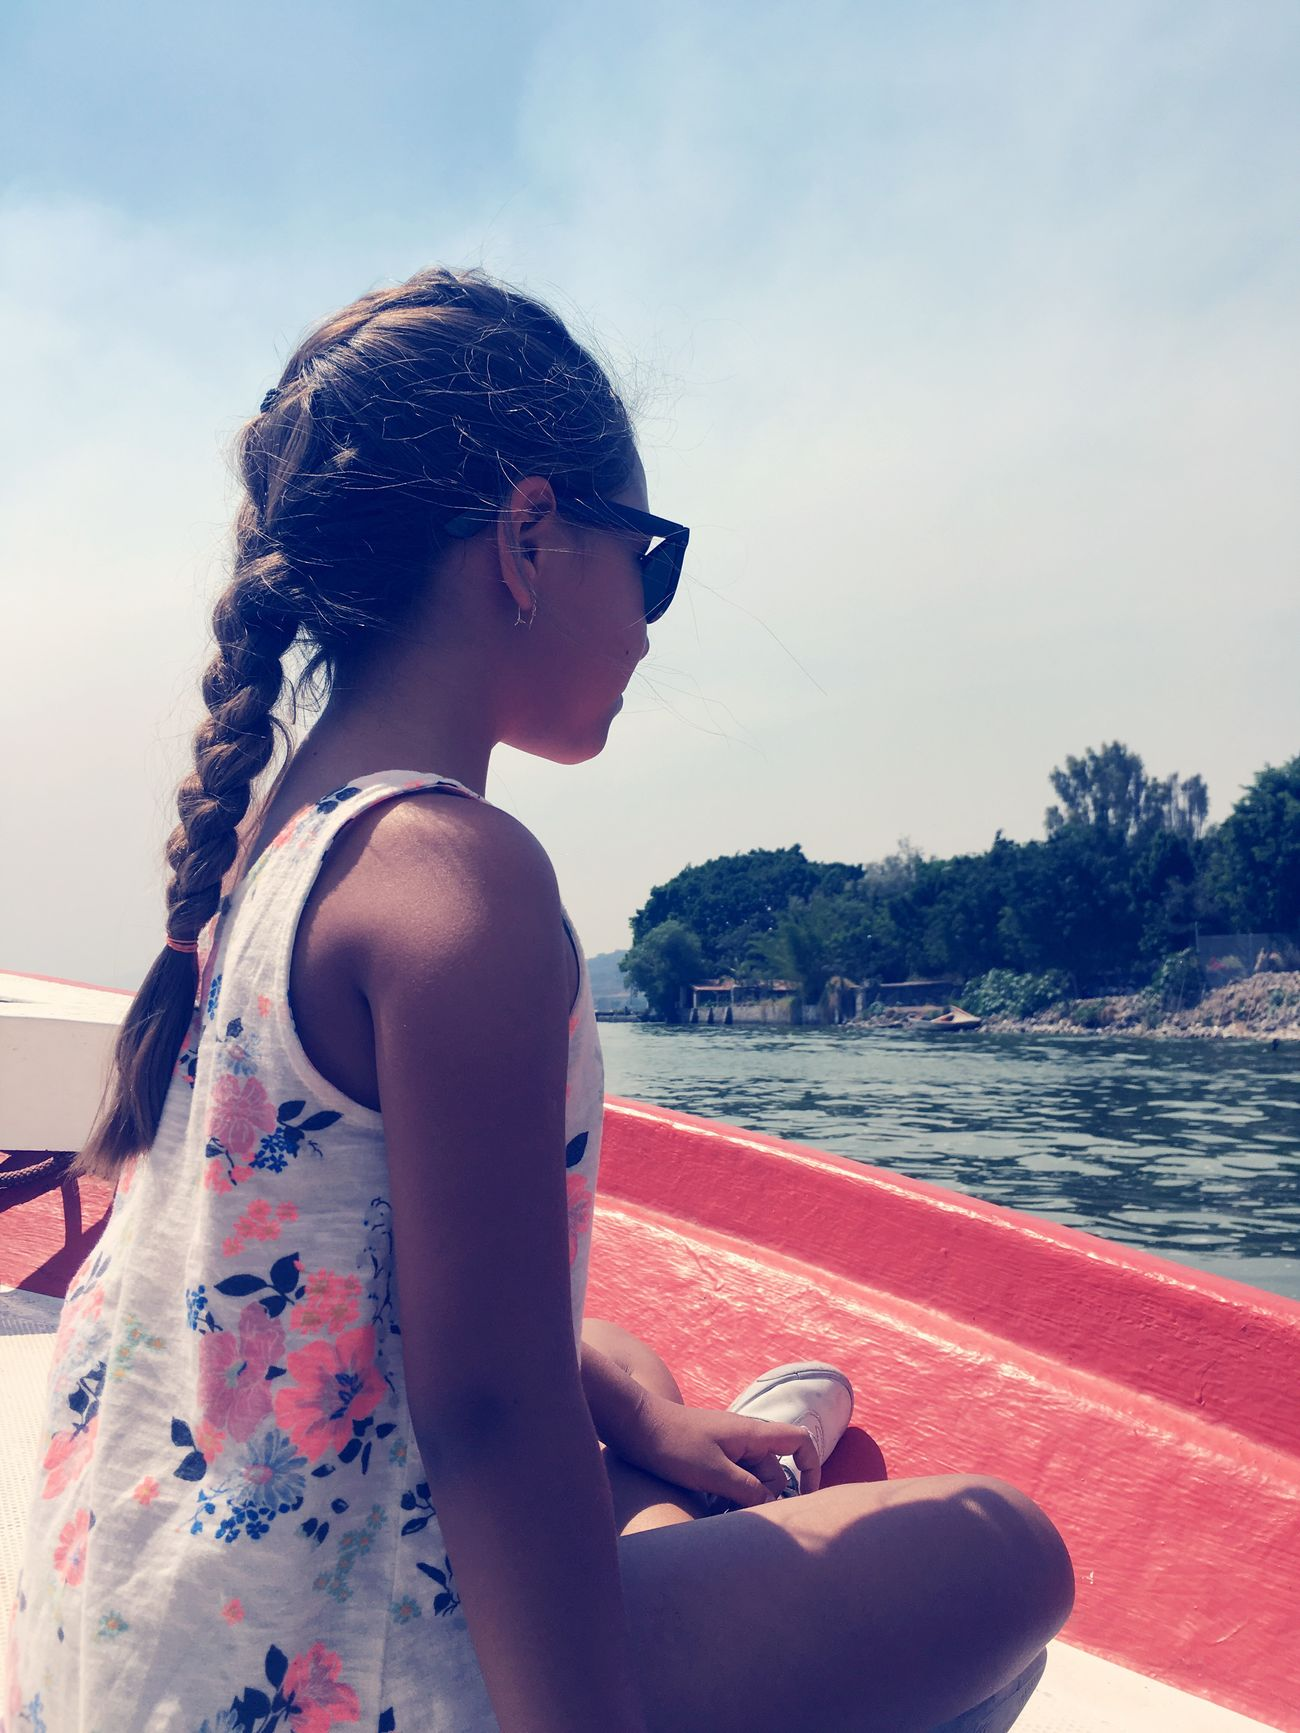 Real People One Person Leisure Activity Sunglasses Lifestyles Sky Water Vacations Nature Side View Niece 💕 Tranquility Disfrutando De La Vida IPhone